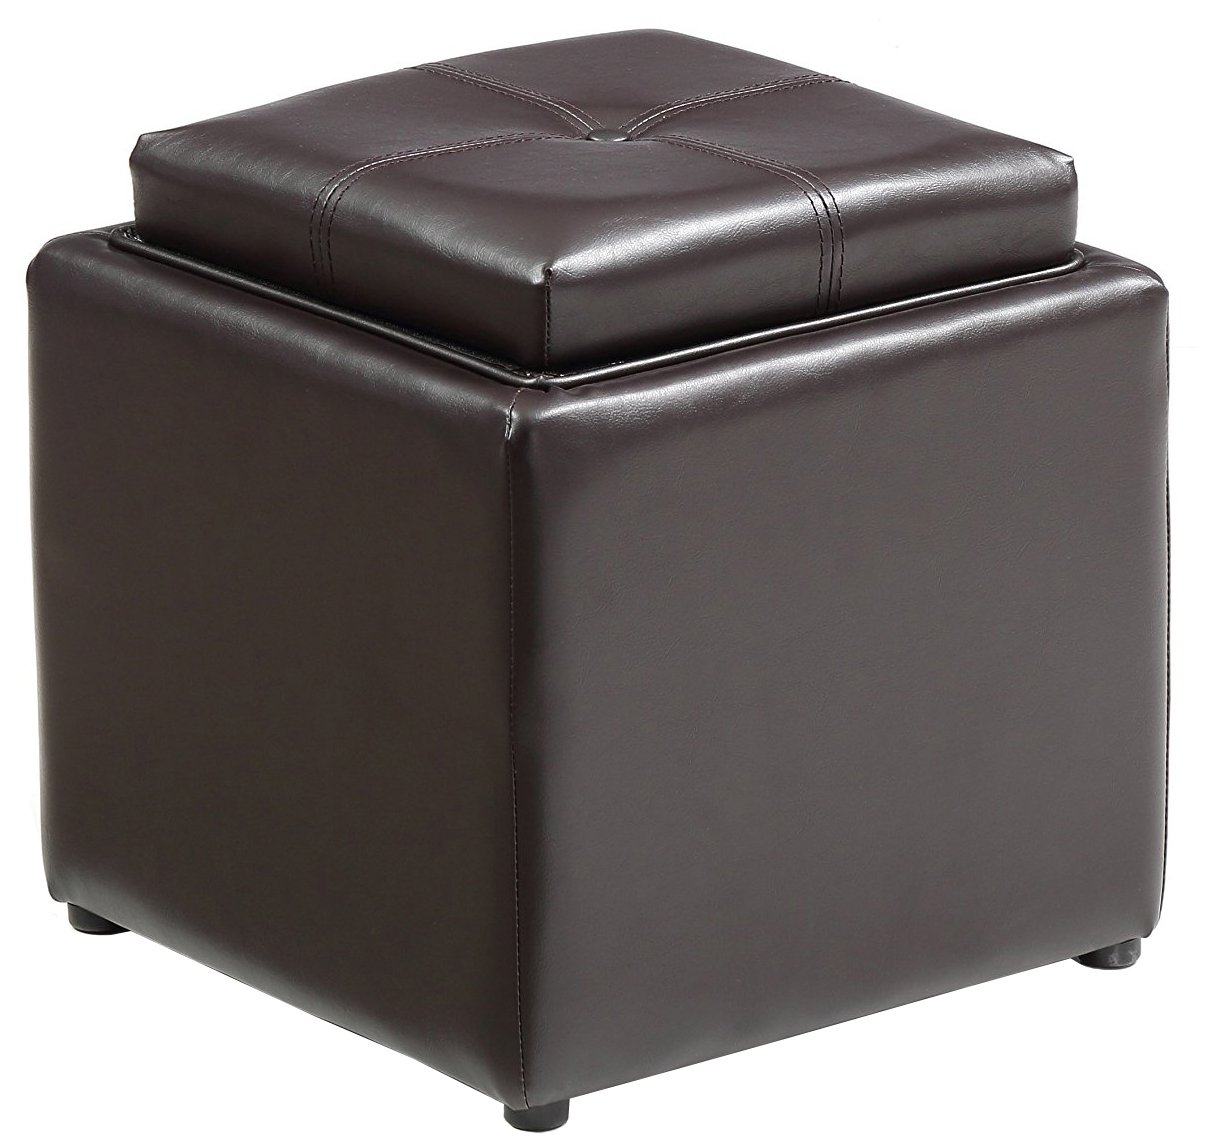 Hodedah Storage Ottoman with Wood Flip Over Tray, Brown